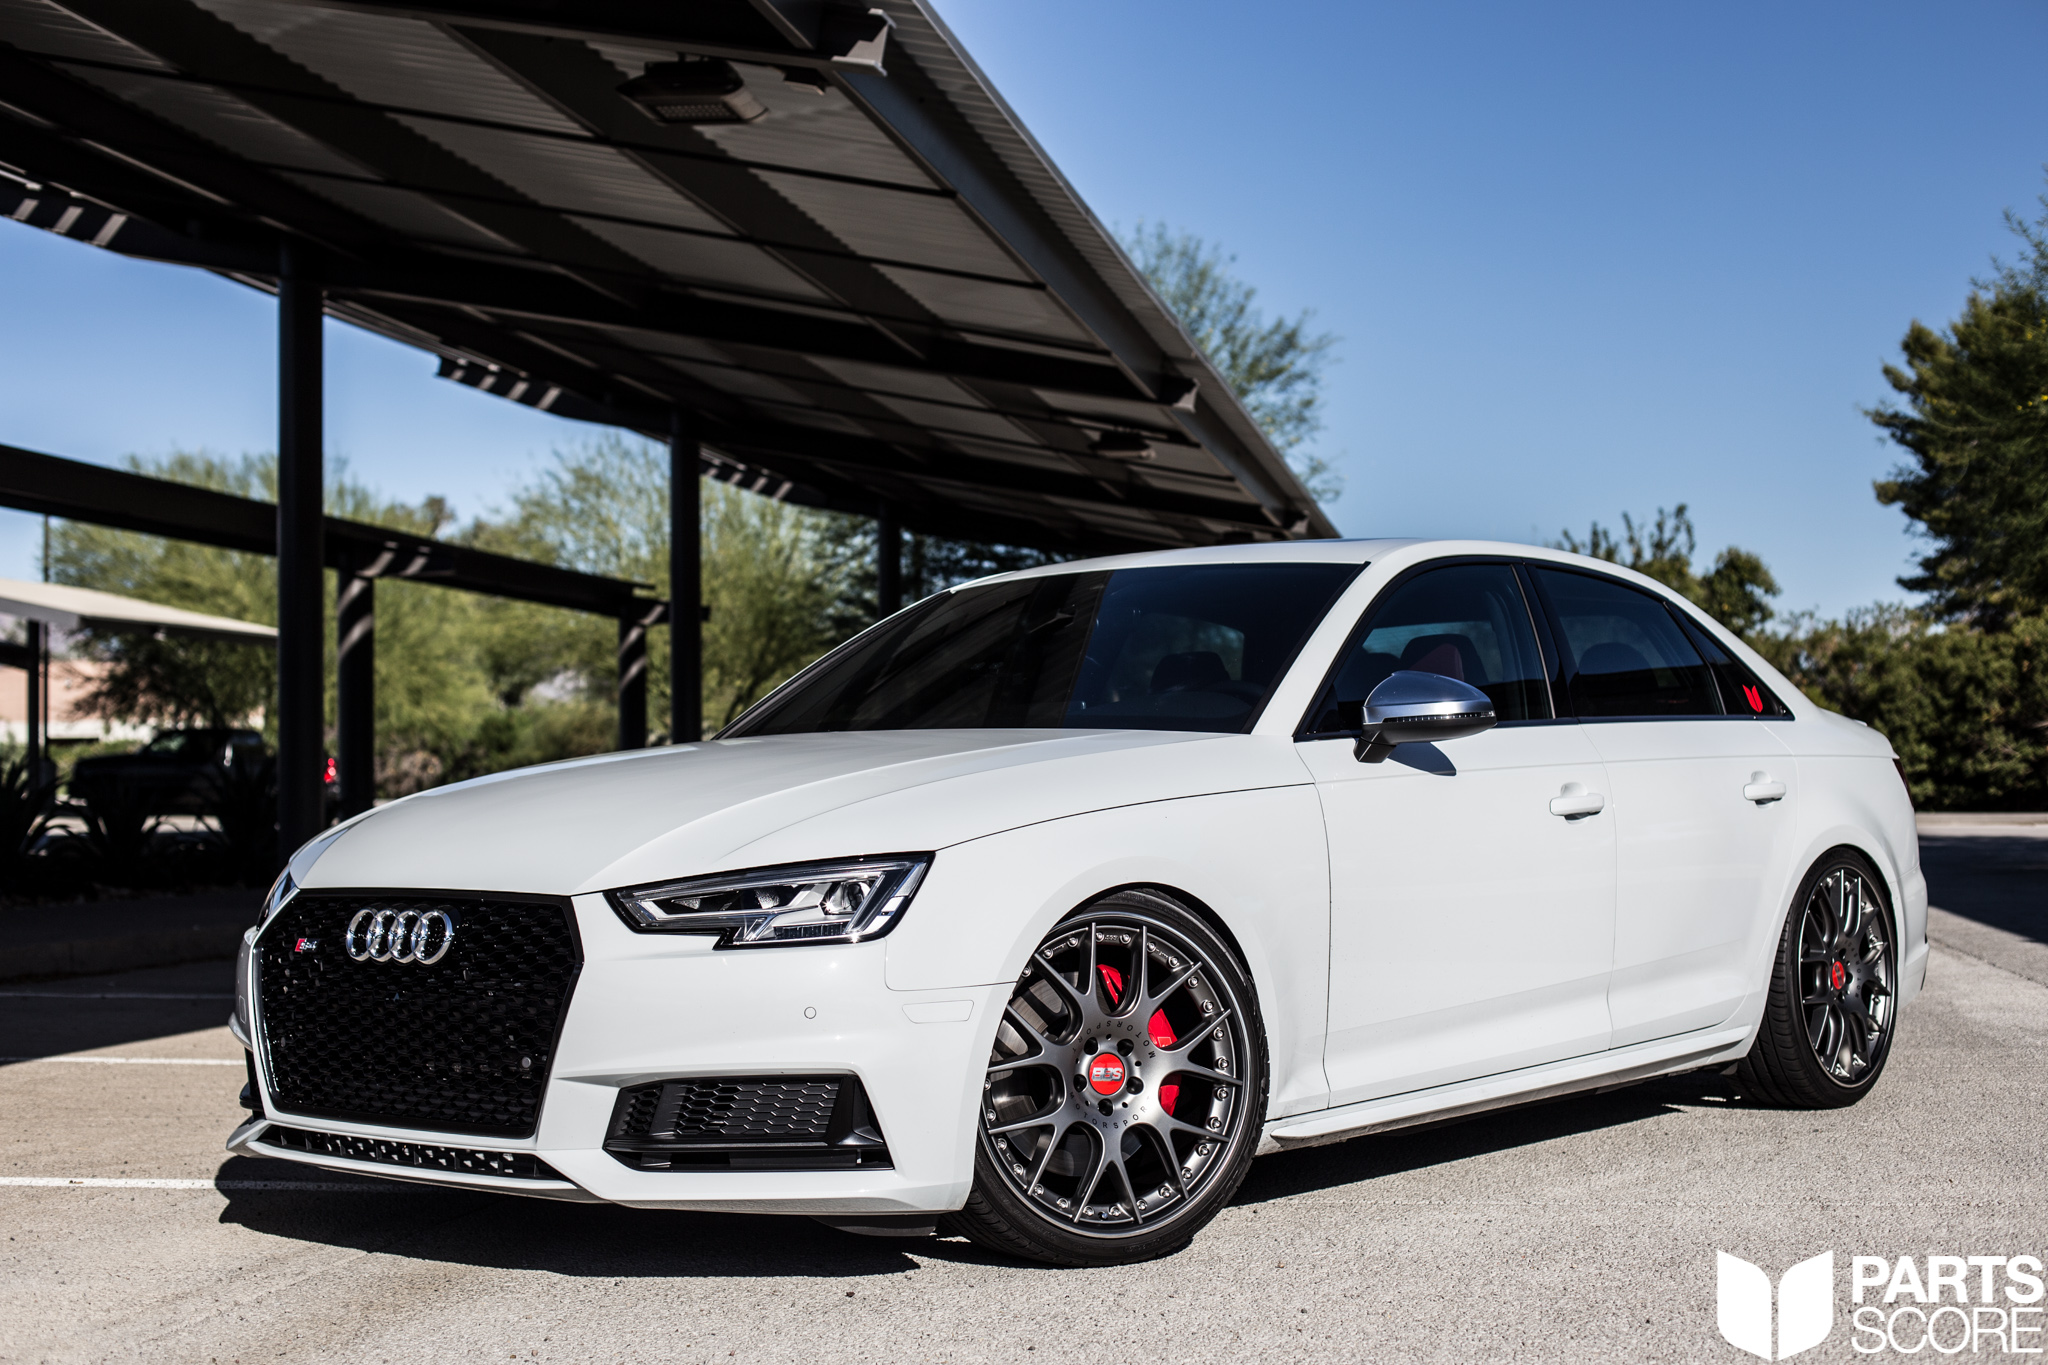 034, 034 motorsport, 034Motorsport, arizona, Audi, audi b9 s4, audi b9 s5, audi has kit, audi performance, audi s4, b9 a4 grill, b9 a4 rs grill, b9 a4 wheels, b9 a5 grill, b9 a5 rs grill, b9 a5 wheels, b9 audi aftermarket wheels, b9 audi hre wheels, b9 audi mods, b9 audi wheel, b9 audi wheels, b9 bbs wheels, b9 h and r springs, b9 h r coilovers, b9 h&r springs, b9 modifications, b9 performance, b9 s4, b9 s4 034, b9 s4 034 motorsports, b9 s4 apr, b9 s4 awe tuning, b9 s4 carbon fiber, b9 s4 downpipe, b9 s4 exhaust, b9 s4 flash, b9 s4 flash tune, b9 s4 front lip, b9 s4 giac, b9 s4 giac tune, b9 s4 grill, b9 s4 h and r coilovers, b9 s4 h r coilovers, b9 s4 h&r coilovers, b9 s4 h&r springs, b9 s4 has kit, b9 s4 intake, b9 s4 kw coilovers, b9 s4 kw has kit, b9 s4 kwv1, b9 s4 kwv2, b9 s4 kwv3, b9 s4 lip, b9 s4 milltek, b9 s4 modification, b9 s4 mods, b9 s4 navigation, b9 s4 ohlins, b9 s4 ohlins road and track, b9 s4 painted reflectors, b9 s4 performance, b9 s4 performance mods, b9 s4 power, b9 s4 spacers, b9 s4 spoiler, b9 s4 springs, b9 s4 tune, b9 s4 wheels, b9 s5, b9 s5 apr, b9 s5 awe tuning, b9 s5 carbon fiber, b9 s5 downpipe, b9 s5 exhaust, b9 s5 front lip, b9 s5 giac, b9 s5 grill, b9 s5 h&r springs, b9 s5 has kit, b9 s5 intake, b9 s5 kw has kit, b9 s5 milltek, b9 s5 mods, b9 s5 painted reflectors, b9 s5 performance, b9 s5 power, b9 s5 sportback wheels, b9 s5 springs, b9 s5 wheels, b9 wheels, BBS, bbs usa, bbs wheels, bbs wheels b9, giac flash, giac tune, giactuned, glacier white, h and r coilovers b9, has kit, height adjustable spring kit, kw coilovers b9, magma red, mesh, mesh grill, michelin tires, o34, o34 motorsport, o34motorsport, parts score, rs grill, rs4 grill, rs4 s4 grill, s4 b9 cts turbo, scottsdale, strut bar, strut tower, strut tower brace, subframe insert, toyo tires